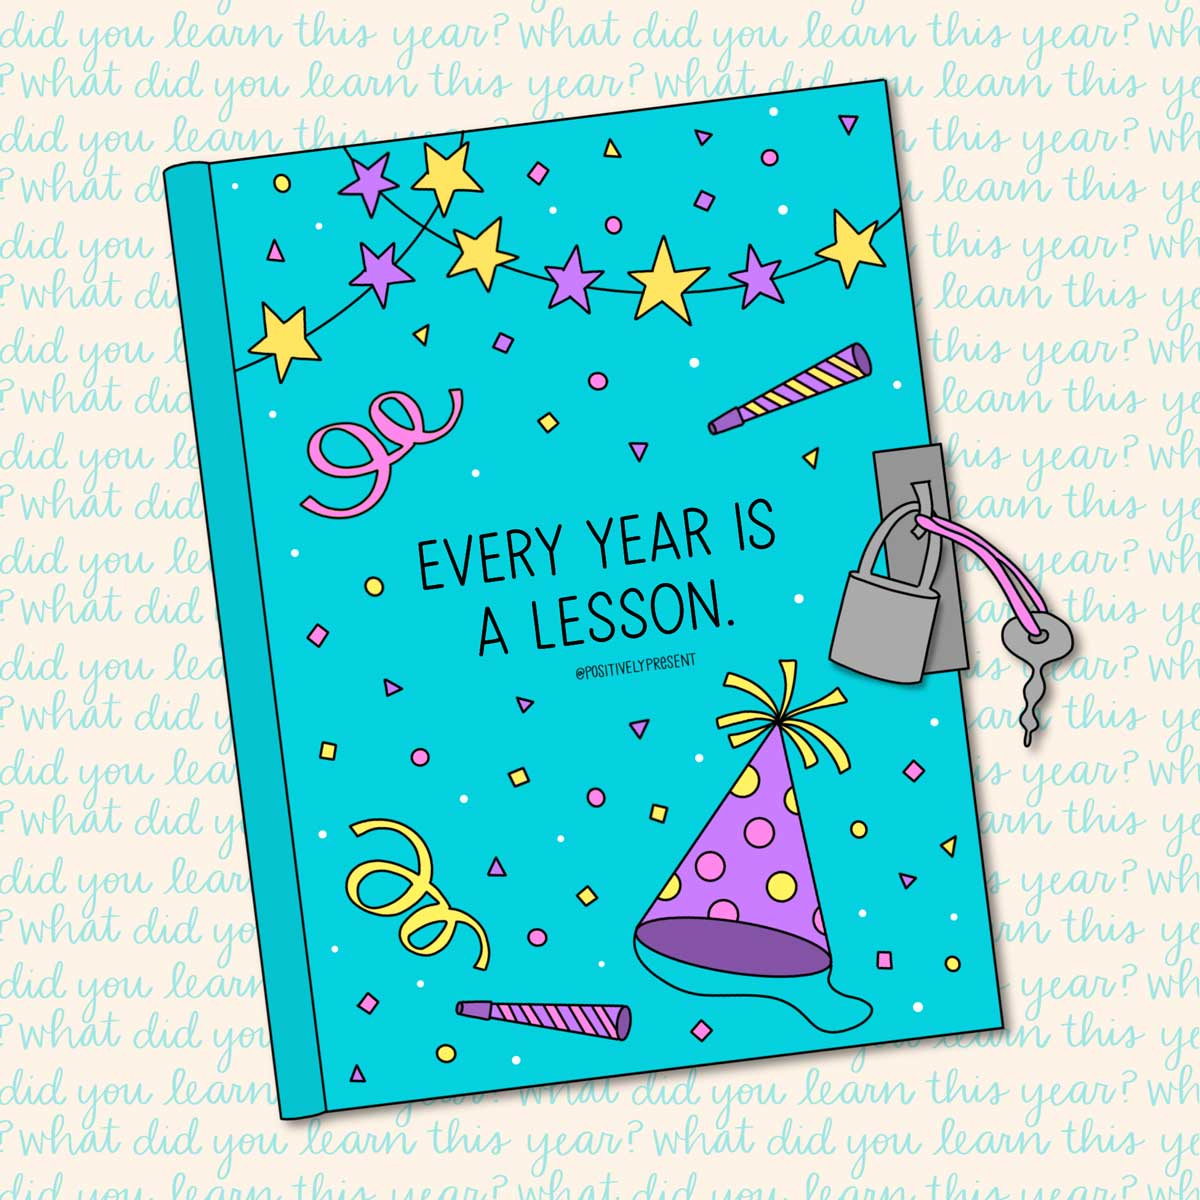 every year is a lession News Year's Quote on drawing of book.